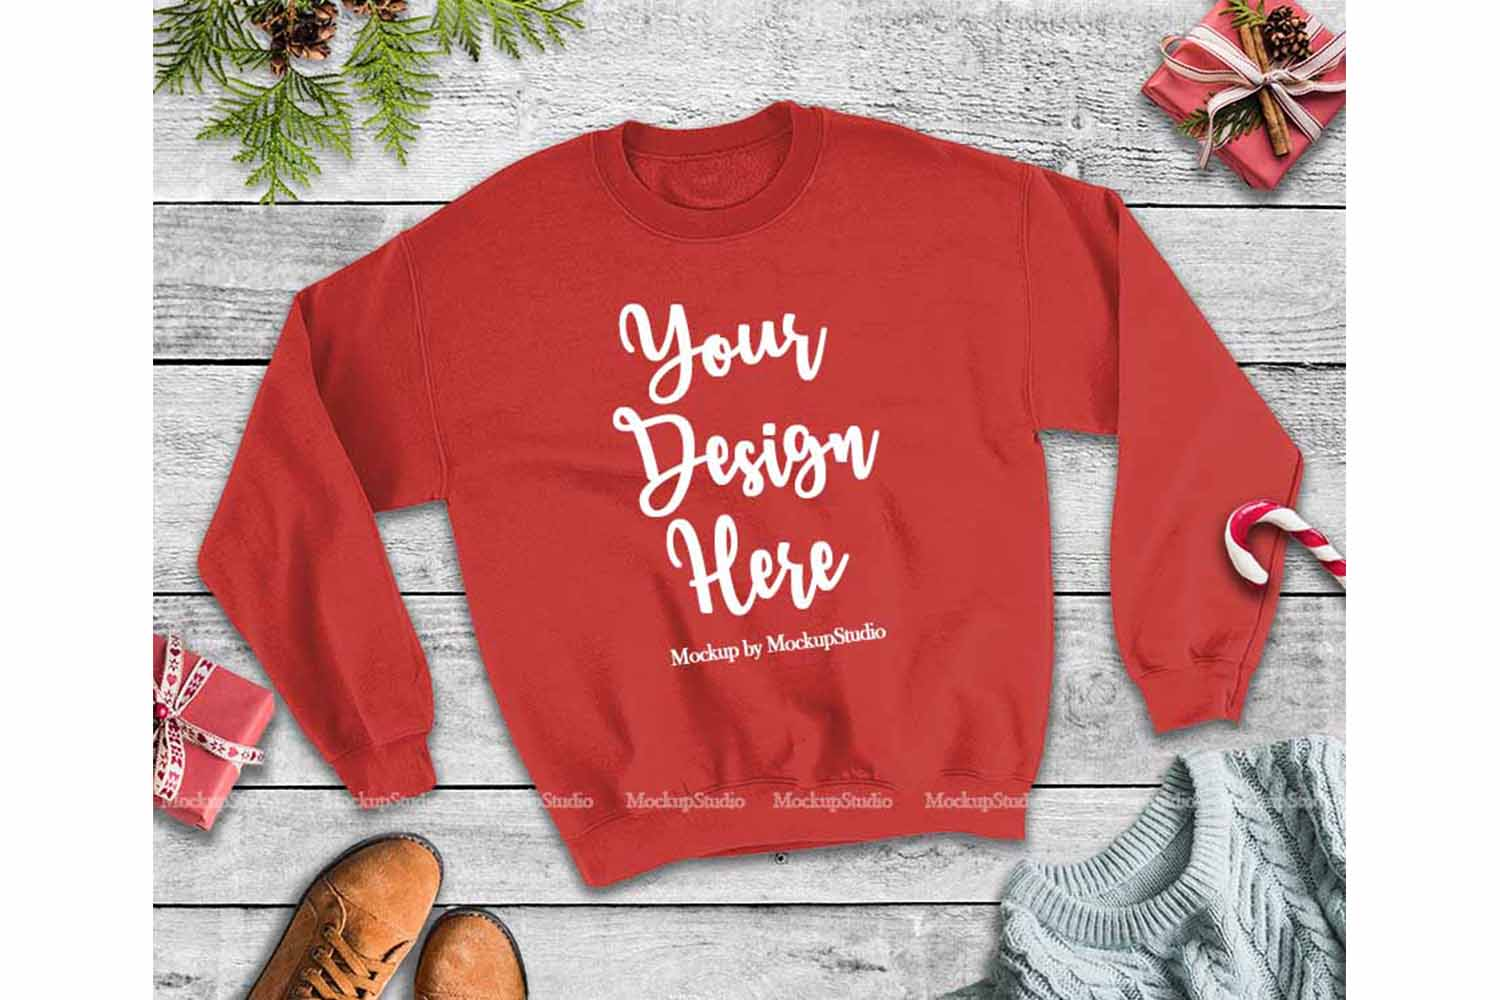 Christmas Winter Party Red Unisex Sweatshirt Mock Up example image 1